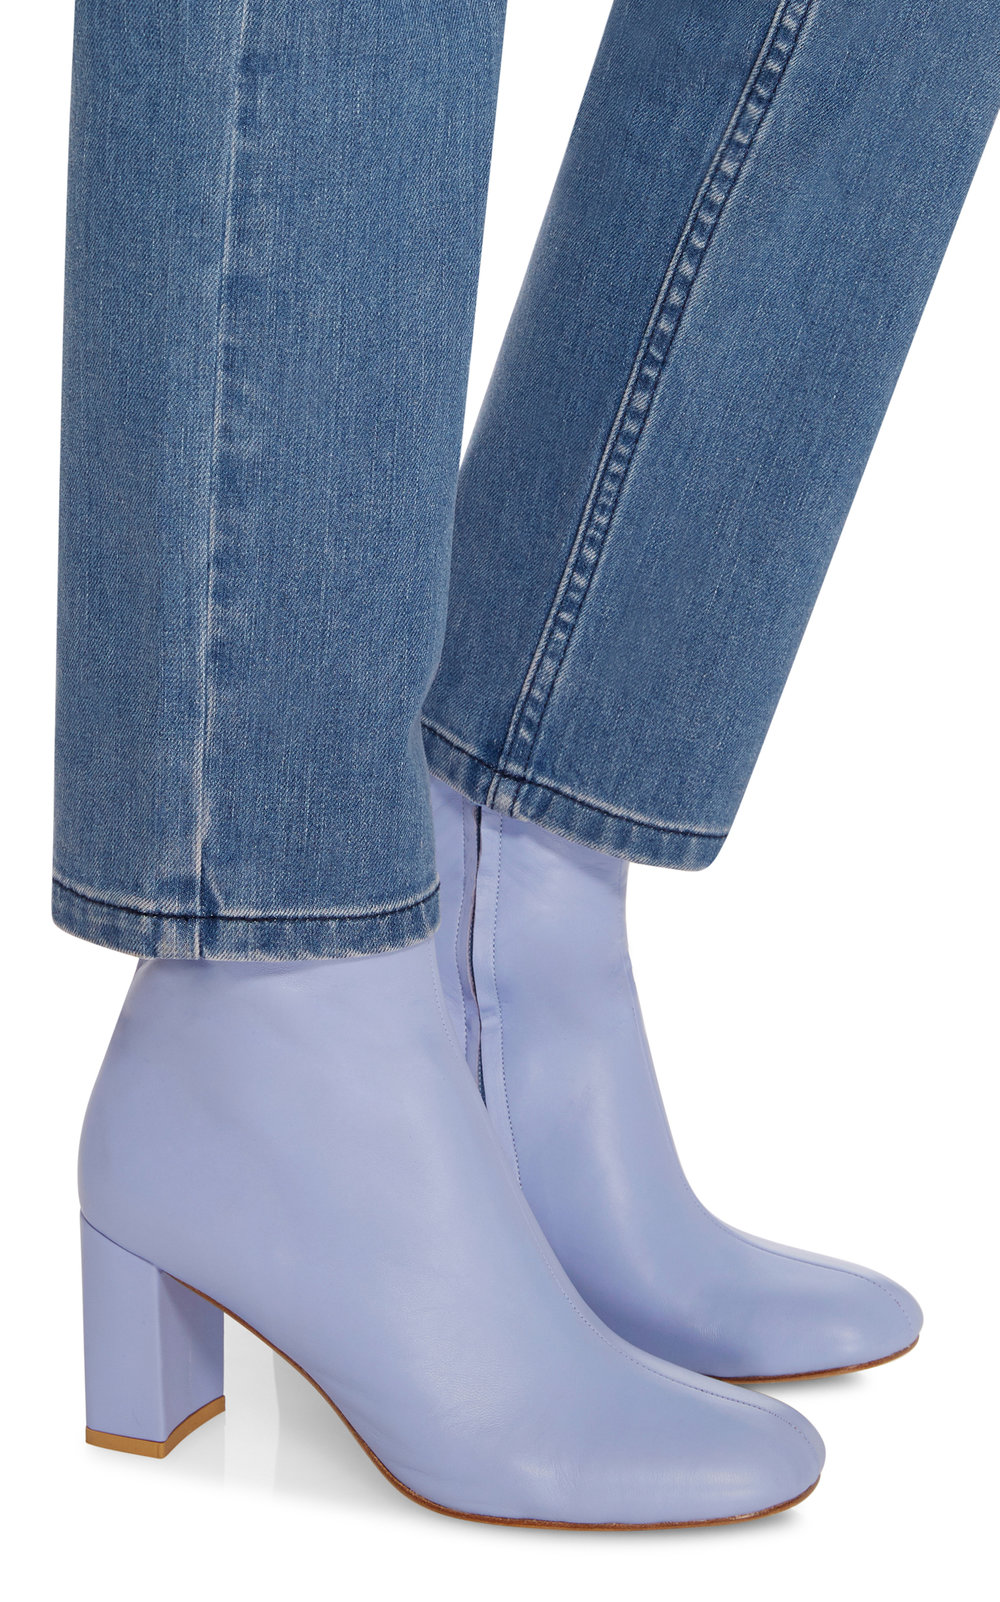 - BLUE AGNES LEATHER ANKLE BOOT $580   *photo via Moda Operandi